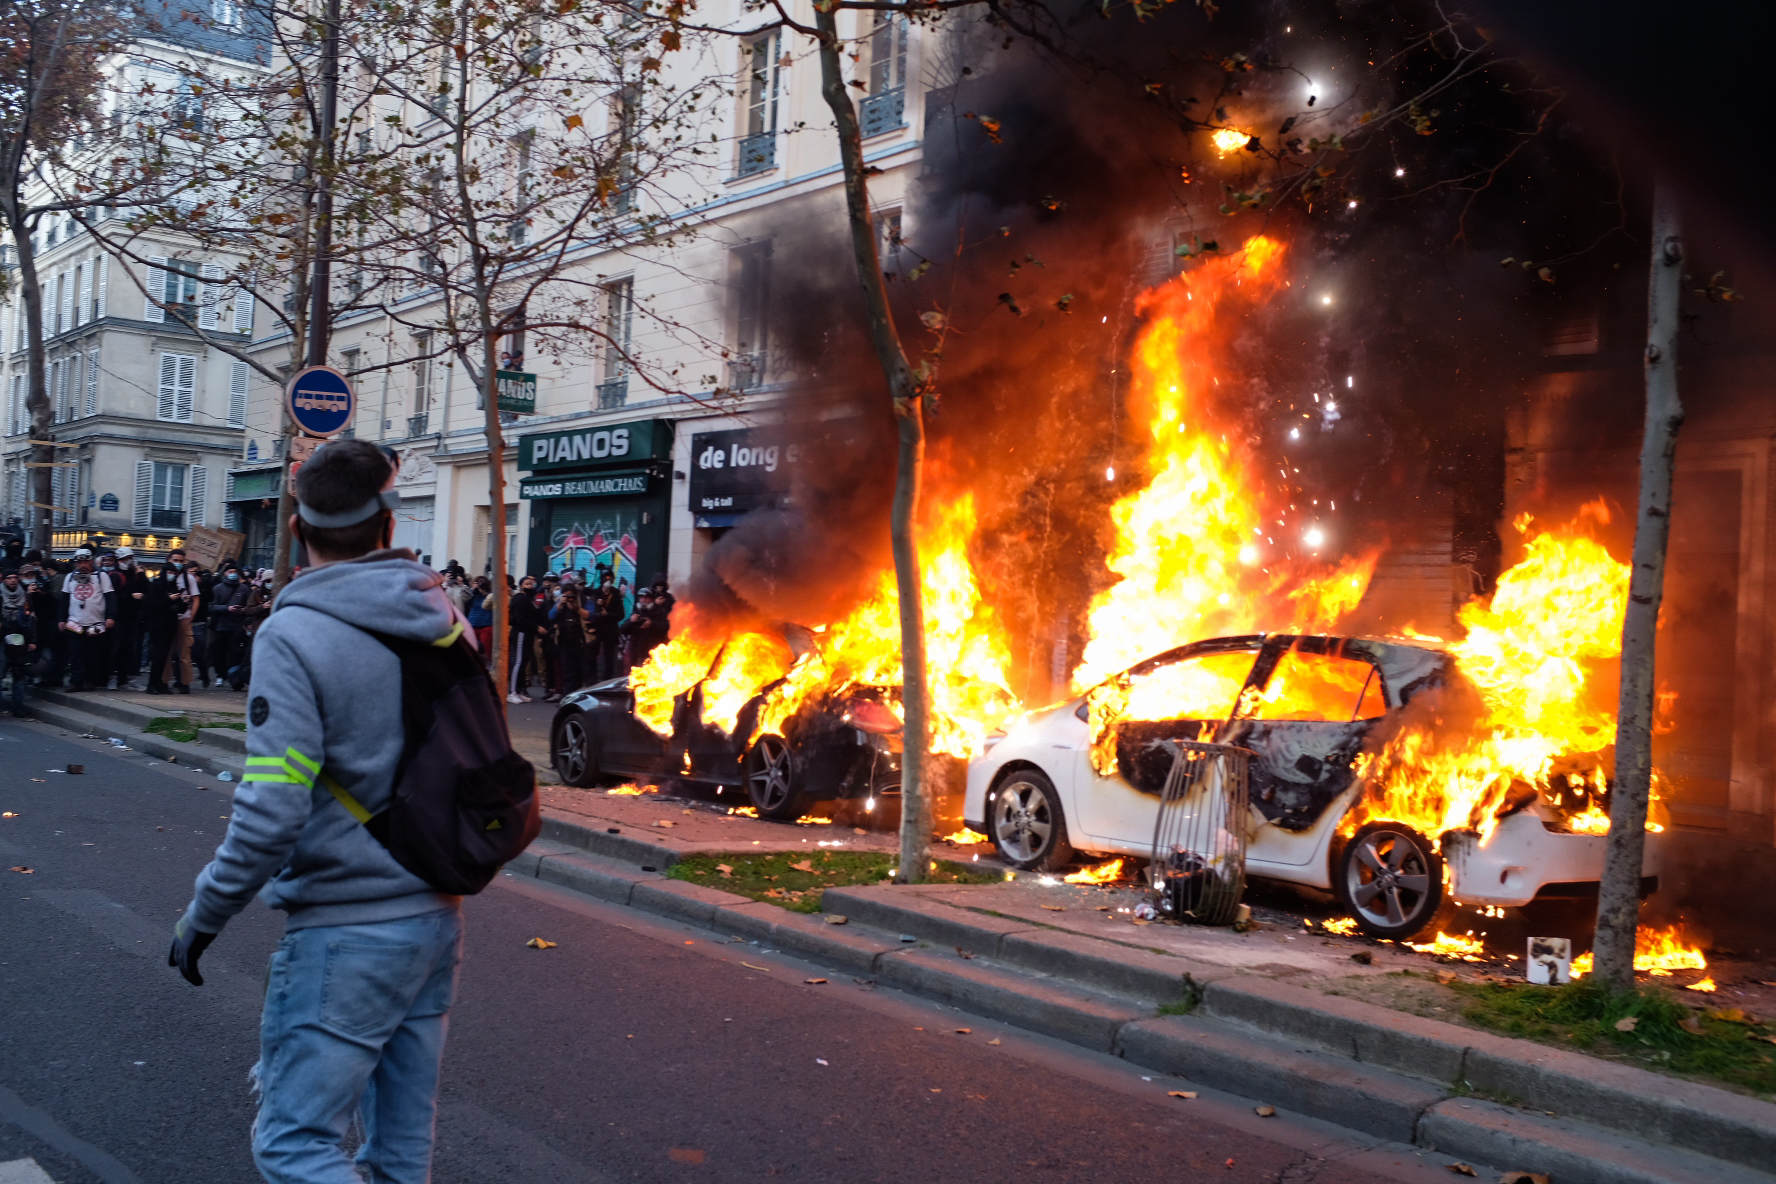 Cars on fire at the November 28 protest. Image Credit: Amy Thorpe